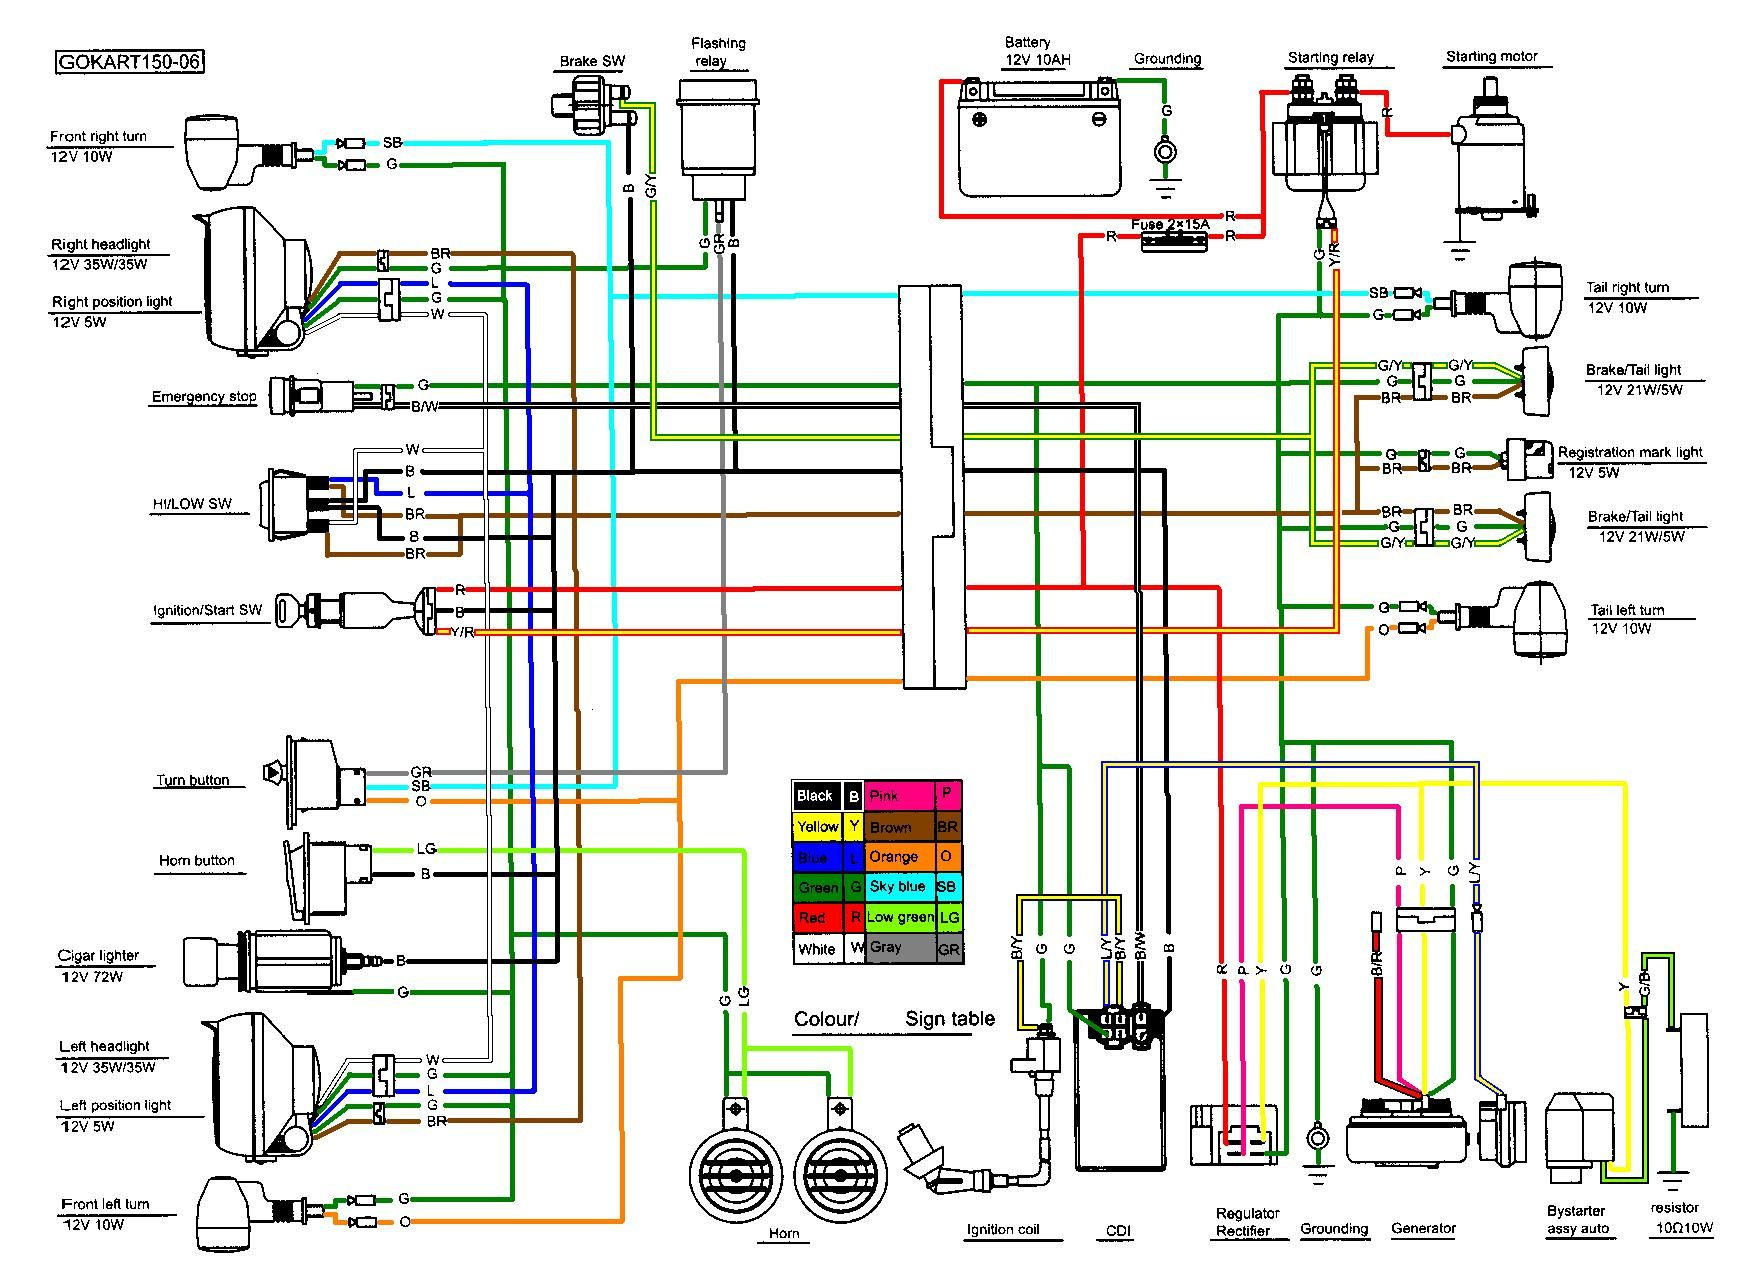 Wiring Diagram Gy6 Schematic Download Gy6 Ignition Throughout 150cc